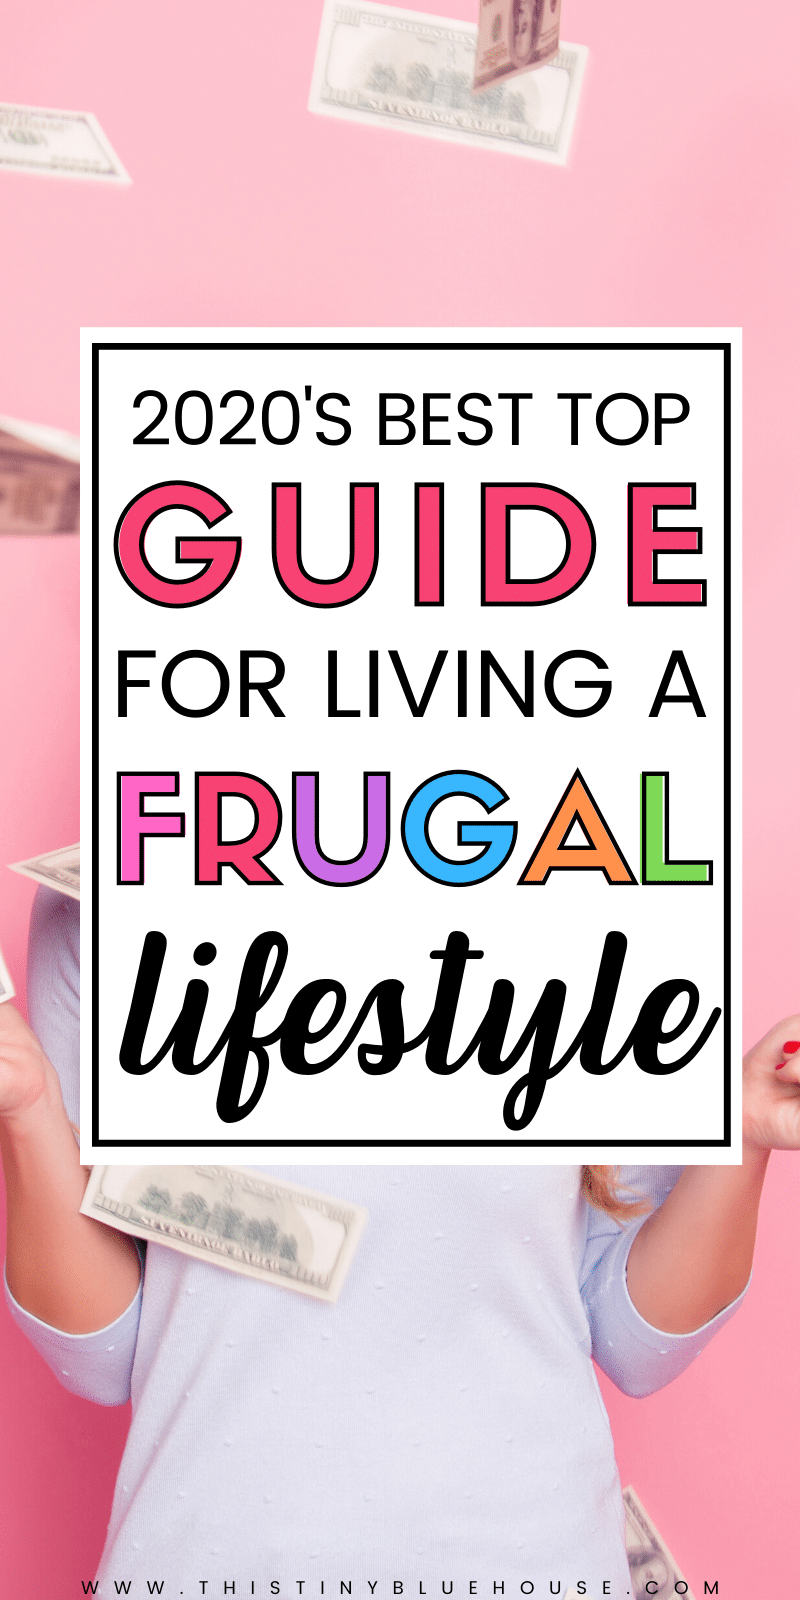 The best frugal living tips for 2020. Tips & tricks to start living a more frugal lifestyle this year. Learn to save money and live well - within your means #FrugalLiving #FrugalLivingTips #FrugalLivingIdeas #FrugalLivingHacks #FrugalLivingSavingMoney #FrugalLivingDIY #FrugalLivingPennyPinching #WaysToLifeFrugal #FrugalLifestyleHacks #FrugalLivingGuide #WaysToLiveFrugal